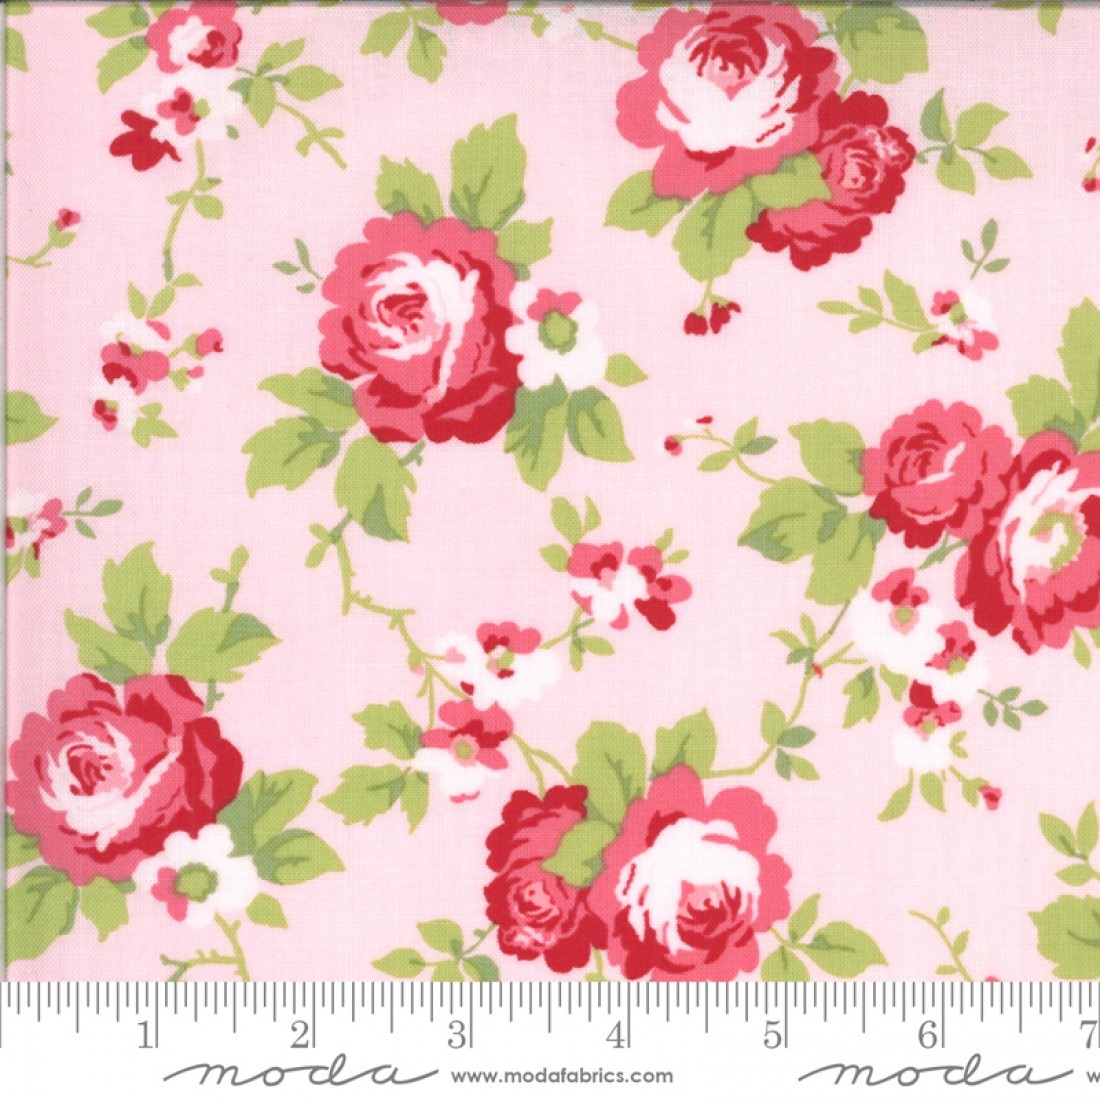 Moda Fabrics - Sophie by Brenda Riddle - Main Floral Blossom 100% Cotton